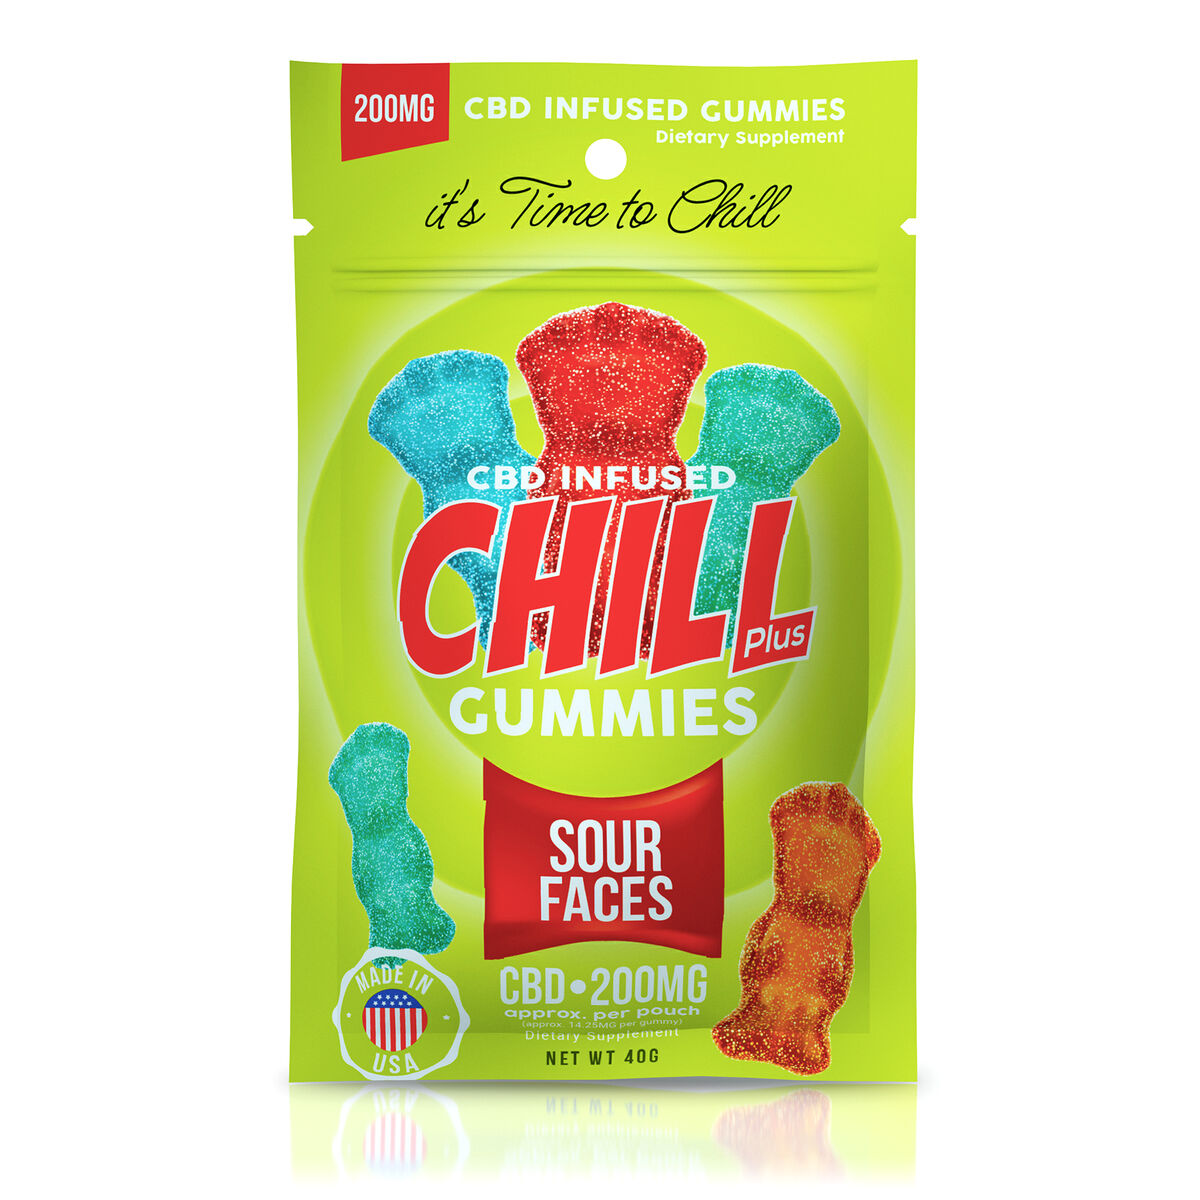 chill-plus-gummies-cbd-infused-sour-faces-200mg